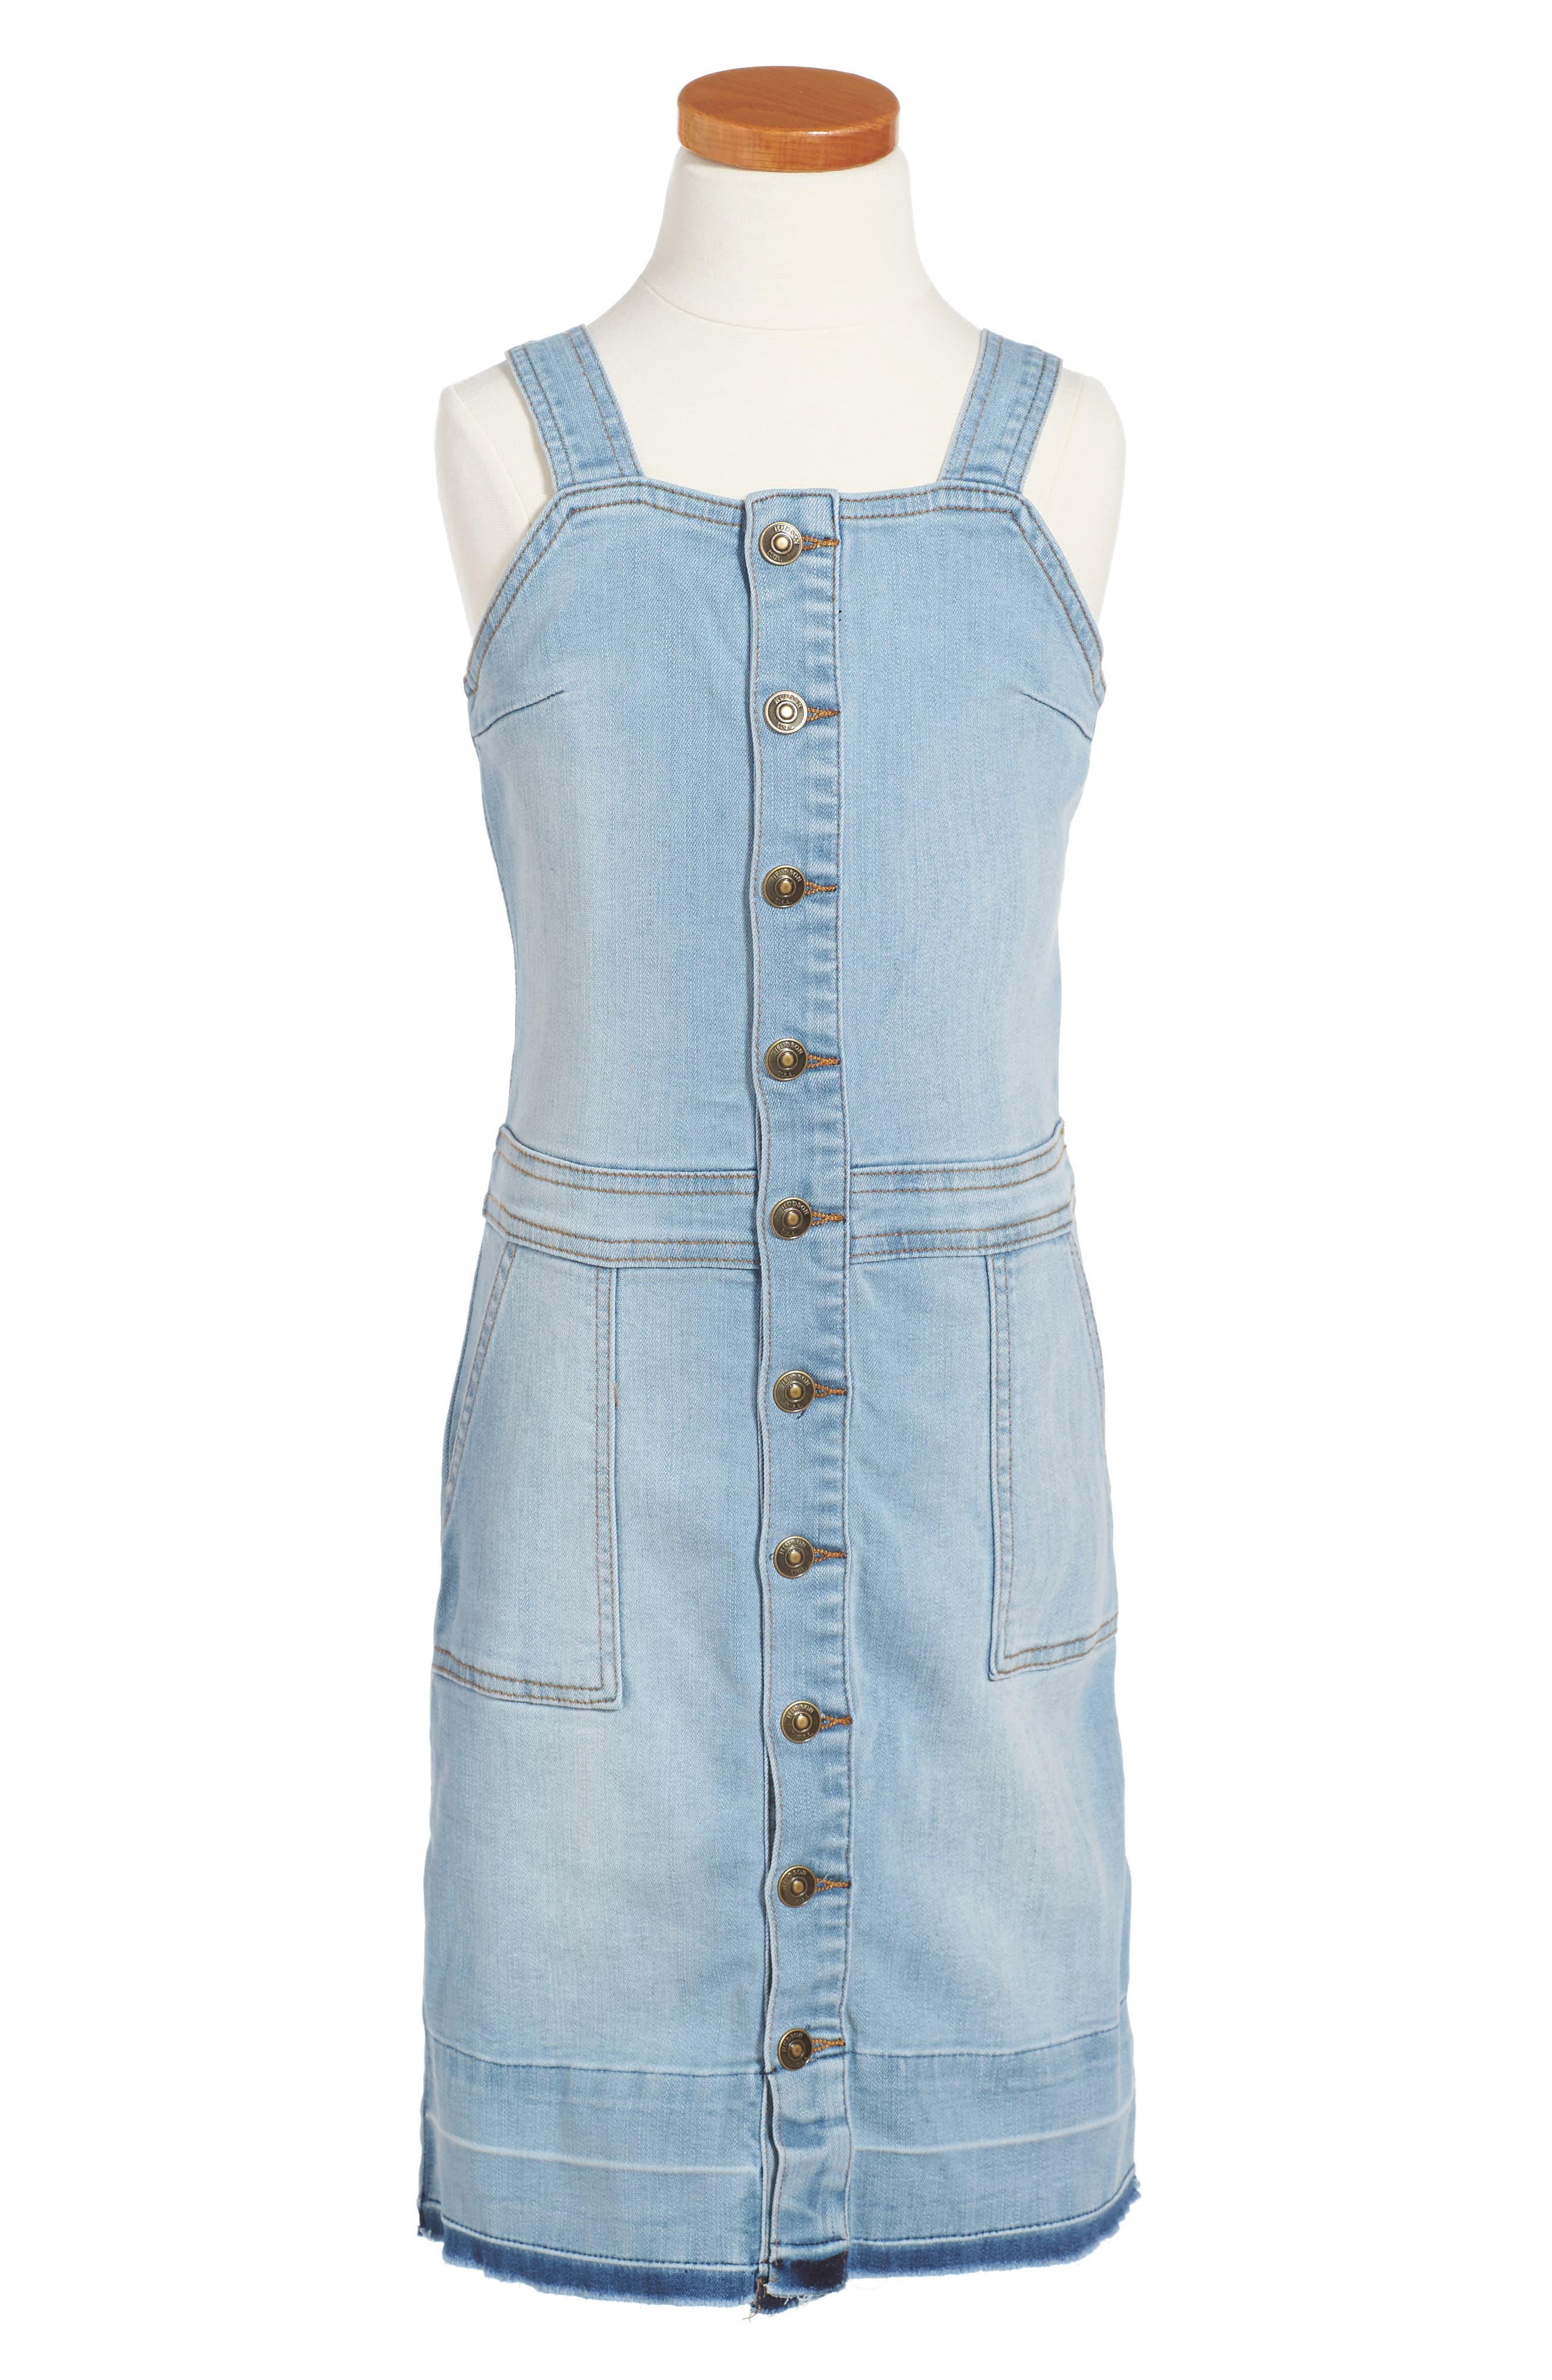 Kelly Denim Overall Dress,                             Main thumbnail 1, color,                             Vintage Blue